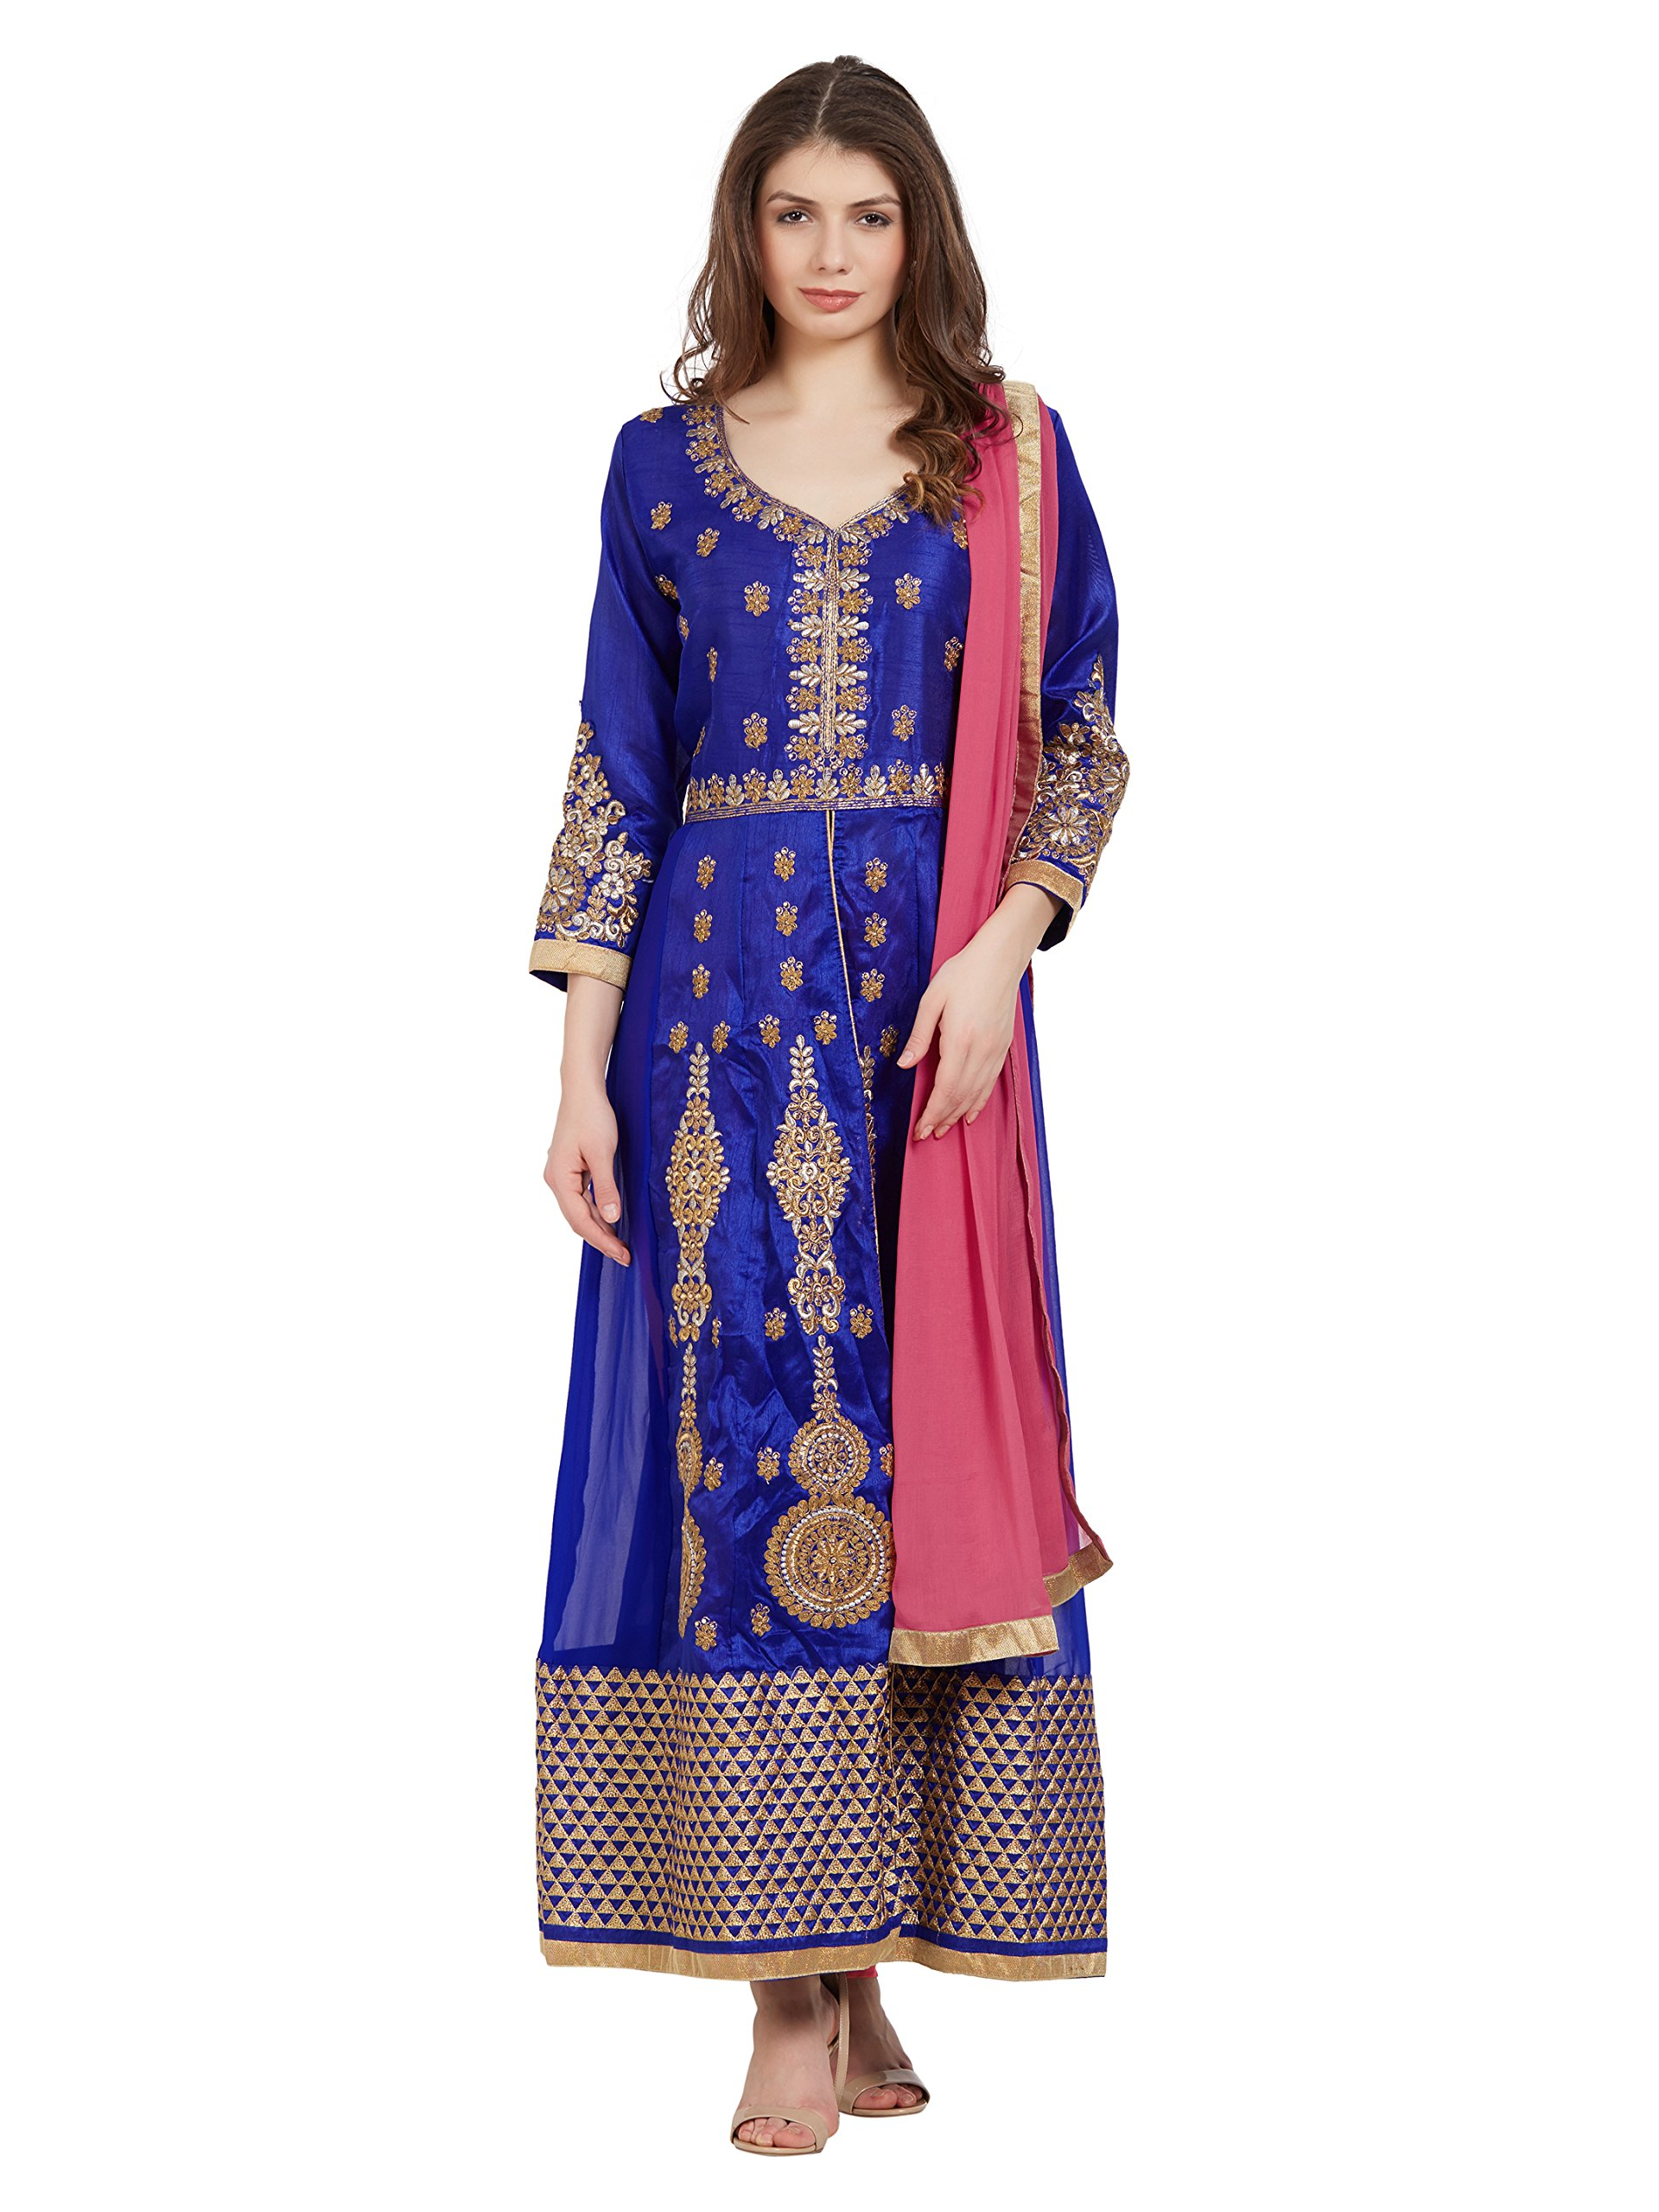 Sourbh Women's Blue Faux Georgette Embroidered Semi-Stitched Partywear Dress Material